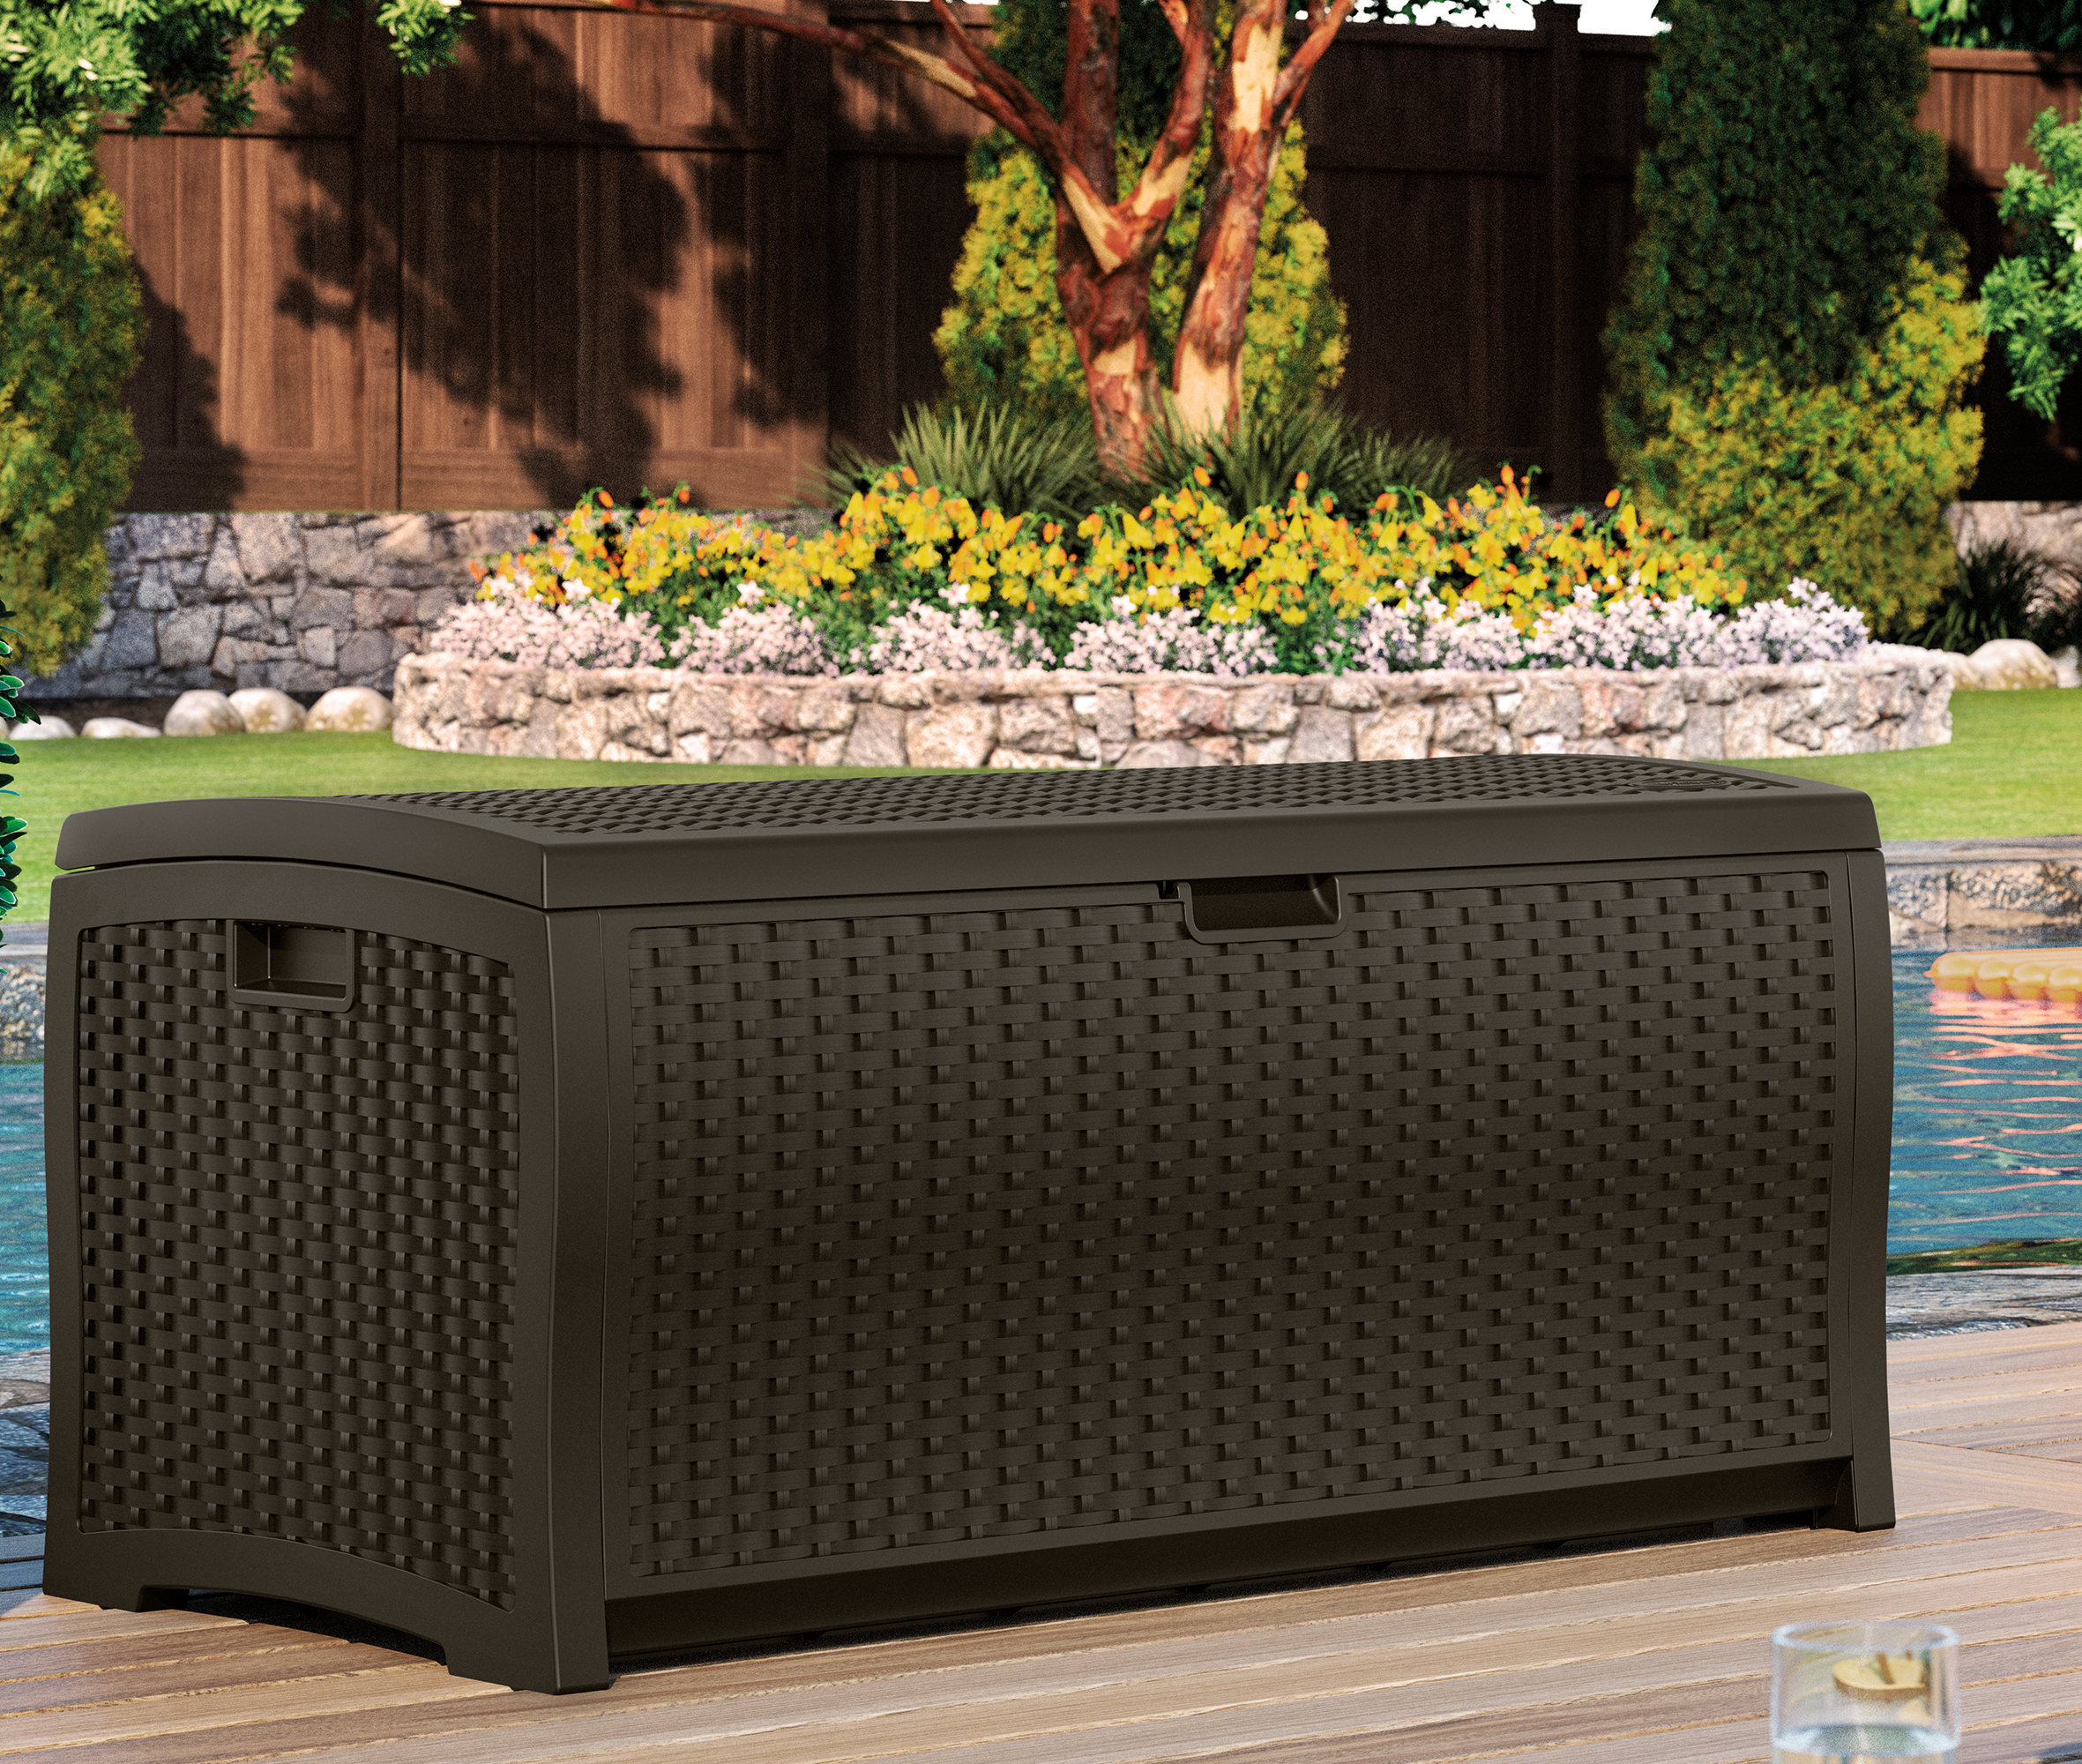 Suncast 73 Gallon Java Resin Wicker Deck Box DBW7300 by Suncast